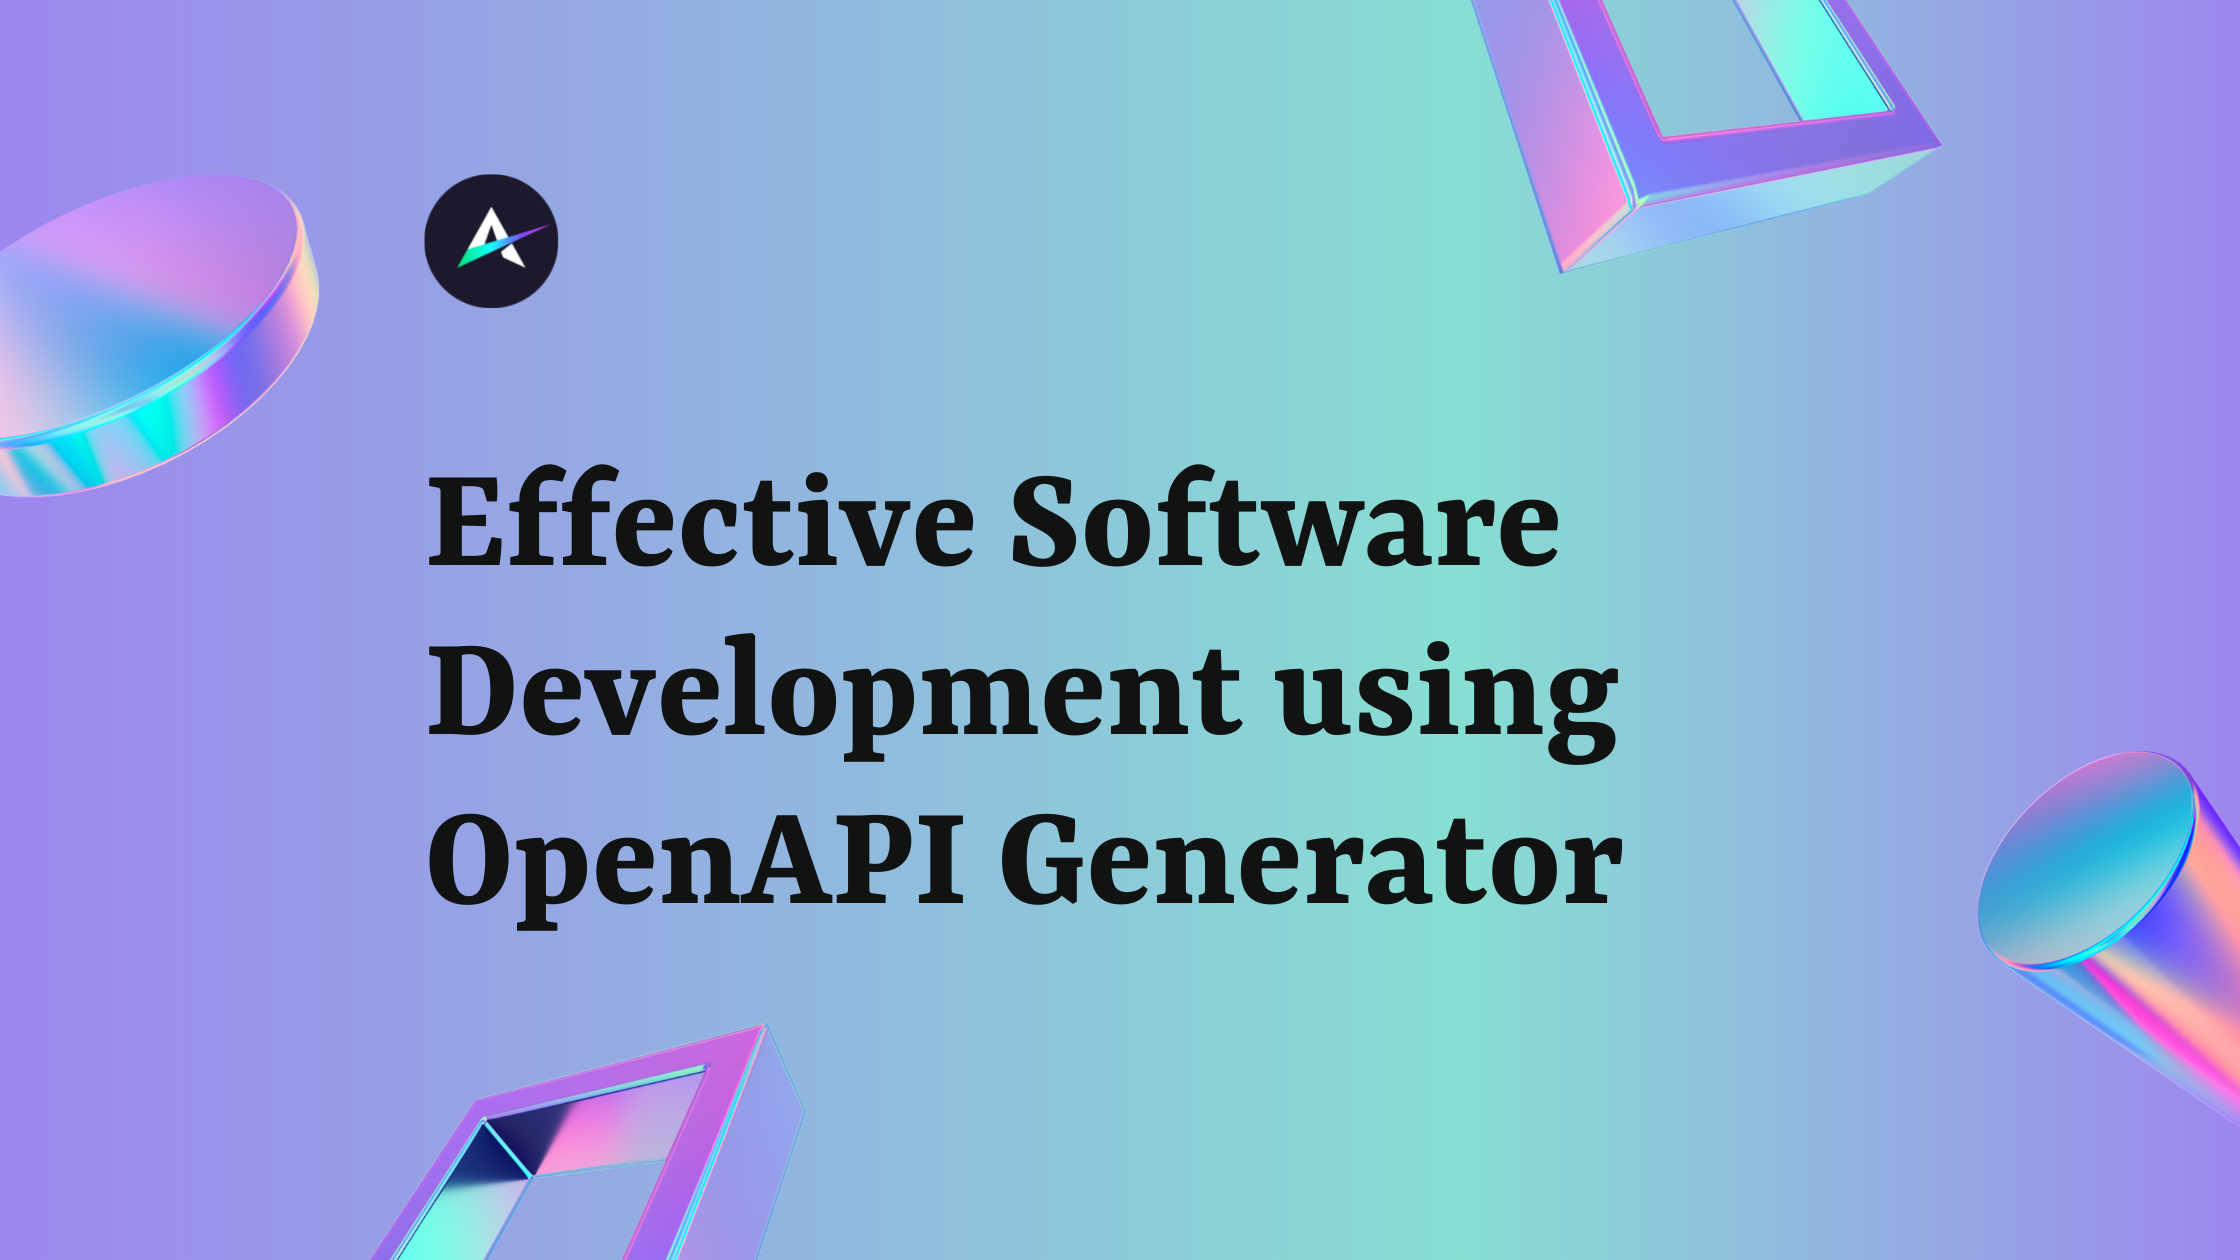 What is OpenAPI Generator? Why is the OpenAPI Generator important in software development? In this post, you will learn about the best development approaches we are currently using at Apex Labs. This time, we will talk about the OpenAPI Generator.